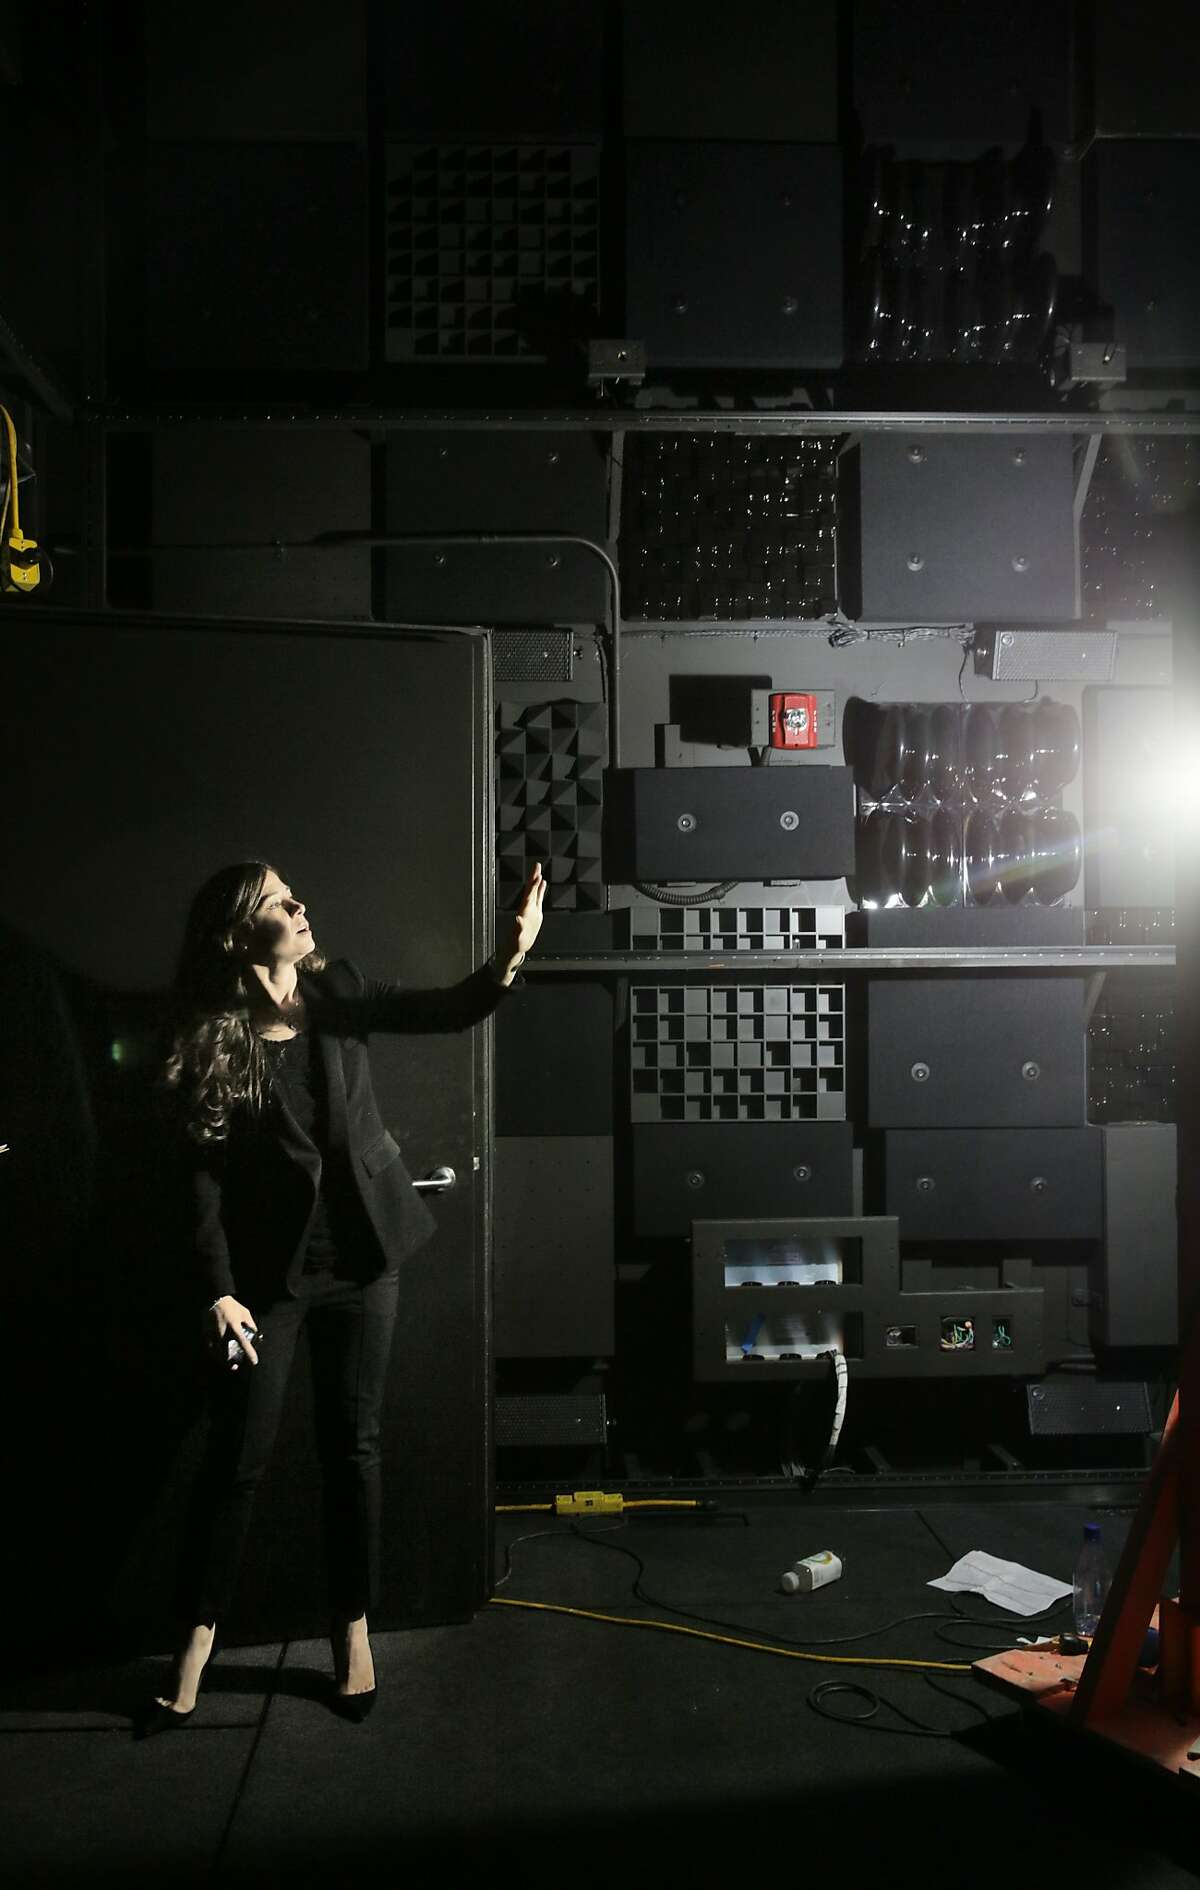 Poppy Crum, head scientist, stands in the Sensory Immersion lab, at the at the new headquarters for Dolby Laboratories on Thursday, September 24, 2015 in San Francisco, Calif.